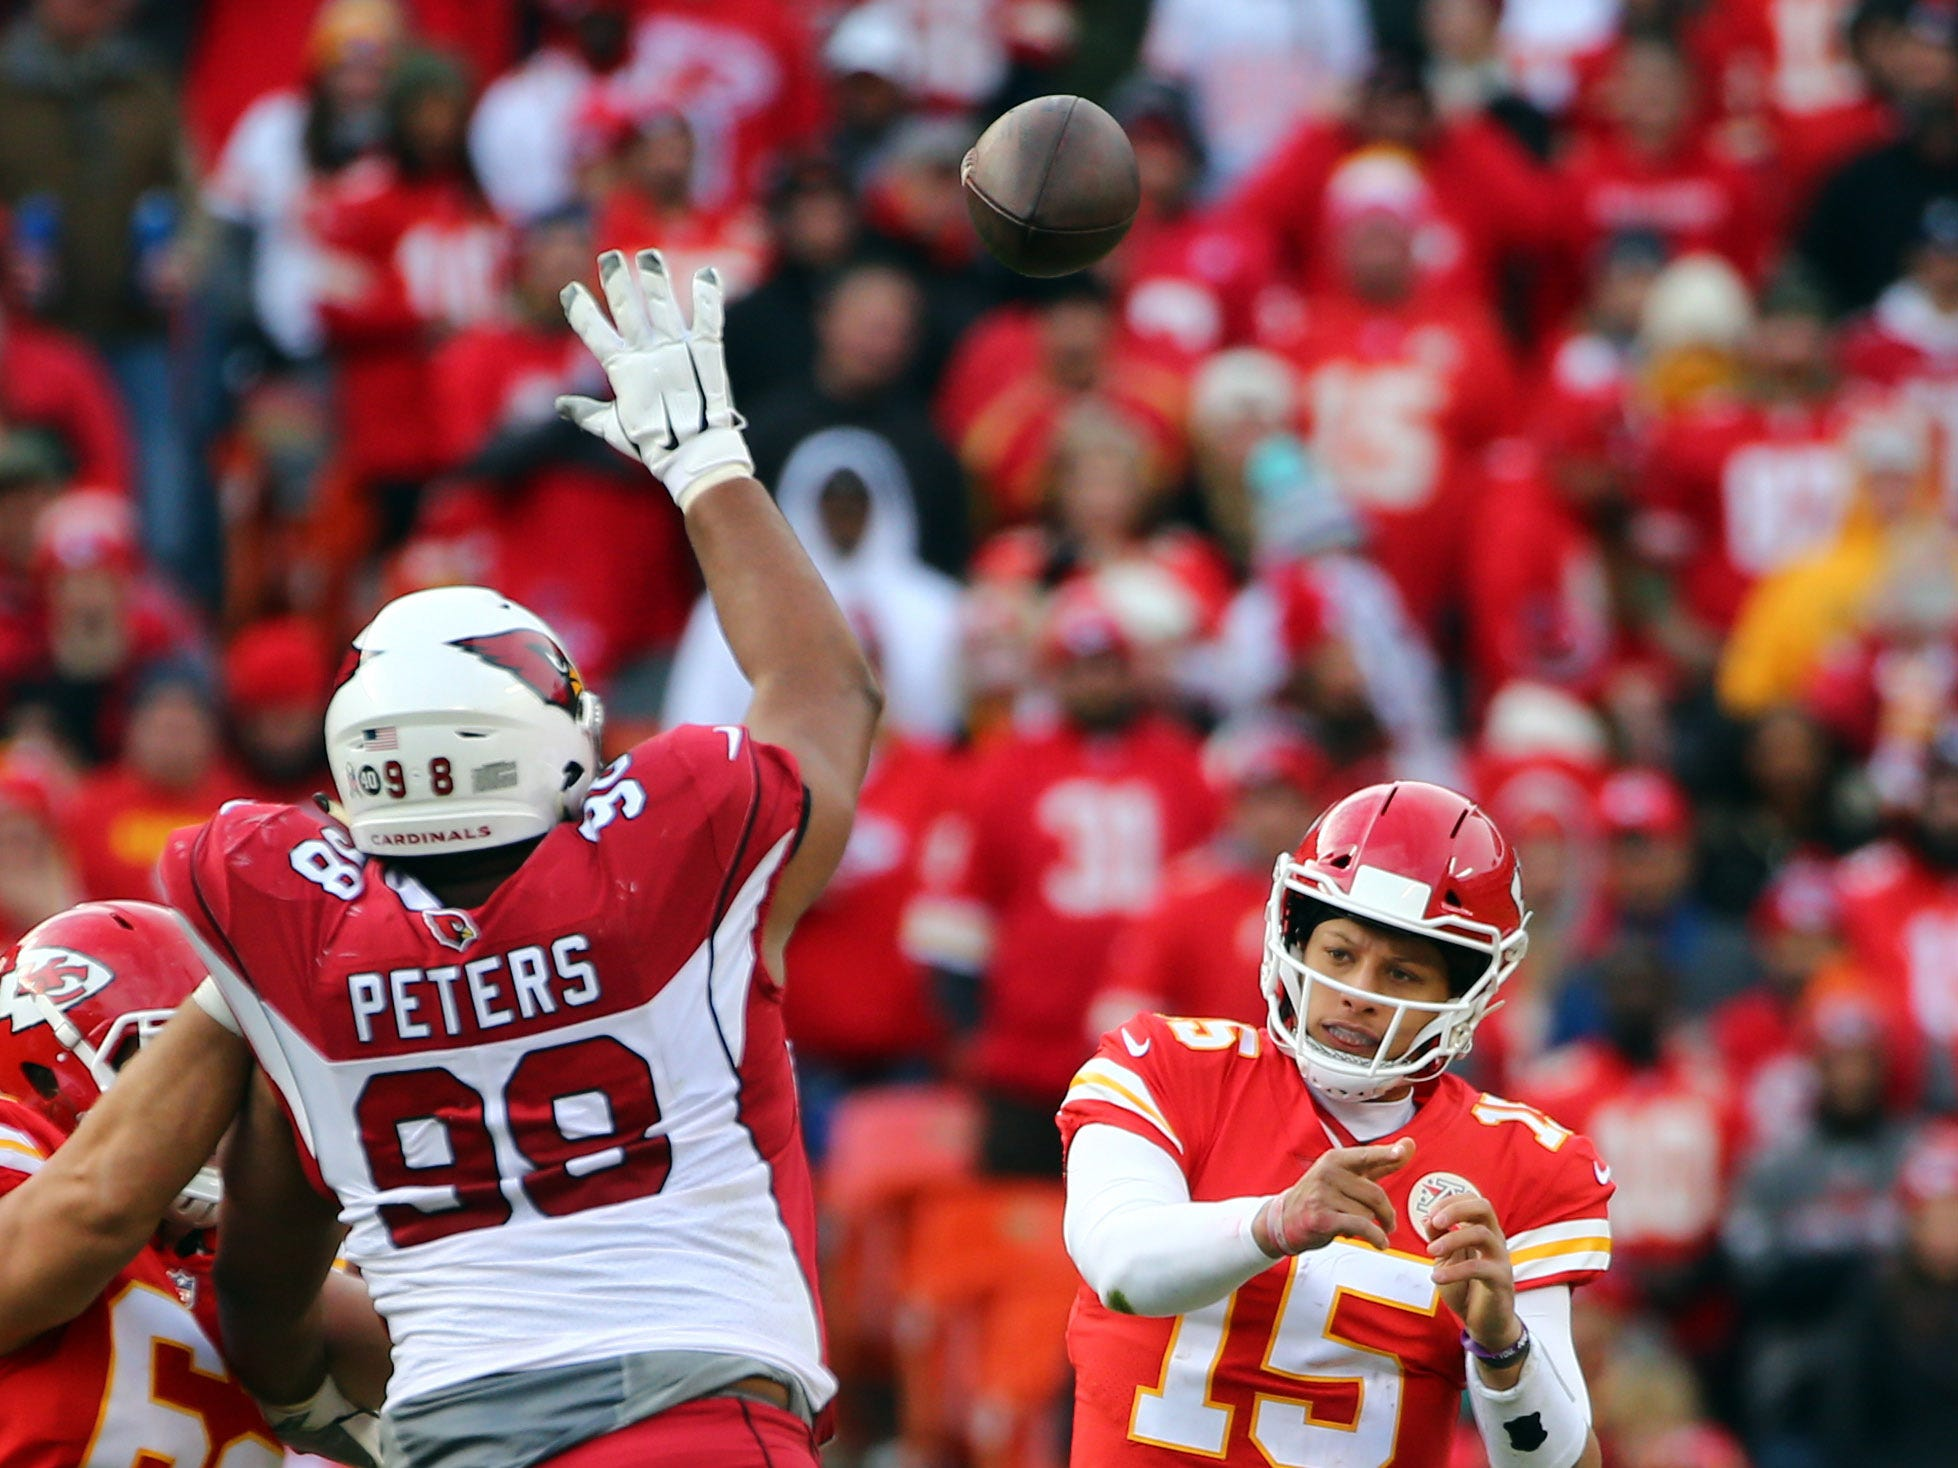 Nov 11, 2018; Kansas City, MO, USA; Kansas City Chiefs quarterback Patrick Mahomes (15) throws a pass as Arizona Cardinals defensive tackle Corey Peters (98) defends in the second half at Arrowhead Stadium. Mandatory Credit: Jay Biggerstaff-USA TODAY Sports